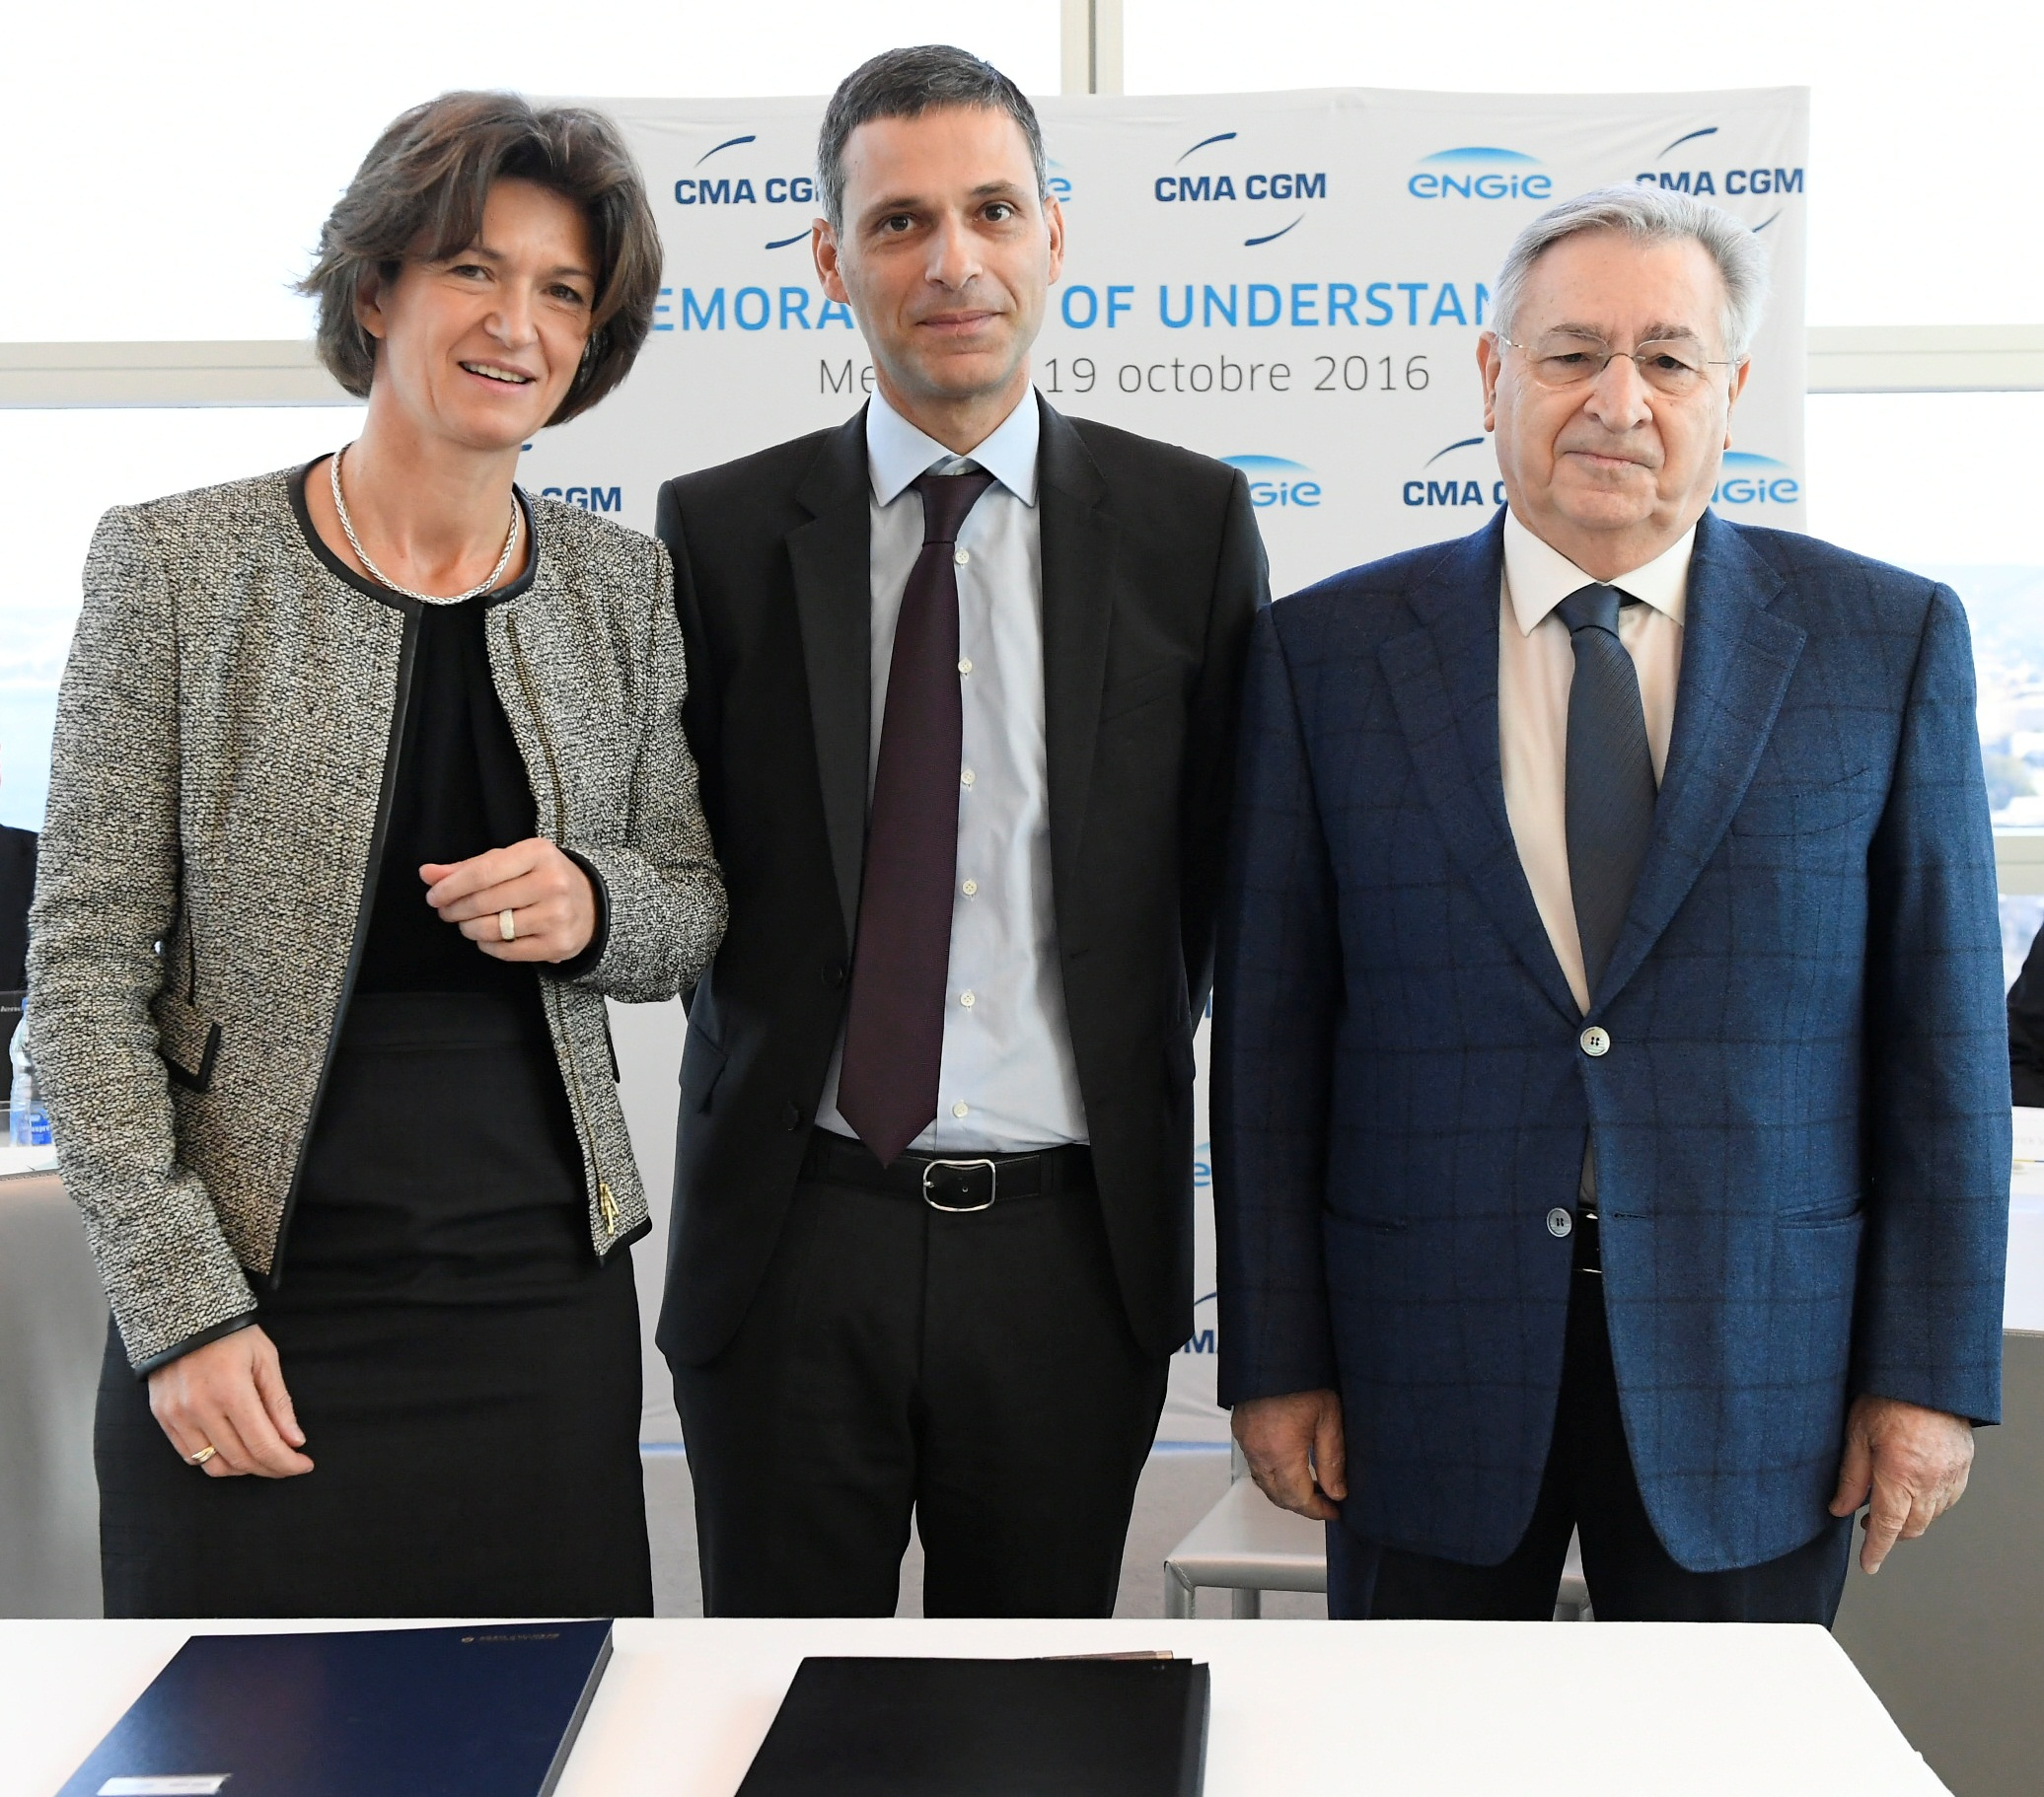 images/latest_news/1476901054use of liquefied natural gas as an alternative to heavy fuel oil - cma cgm signs a first memorandum of understanding with engie.jpg